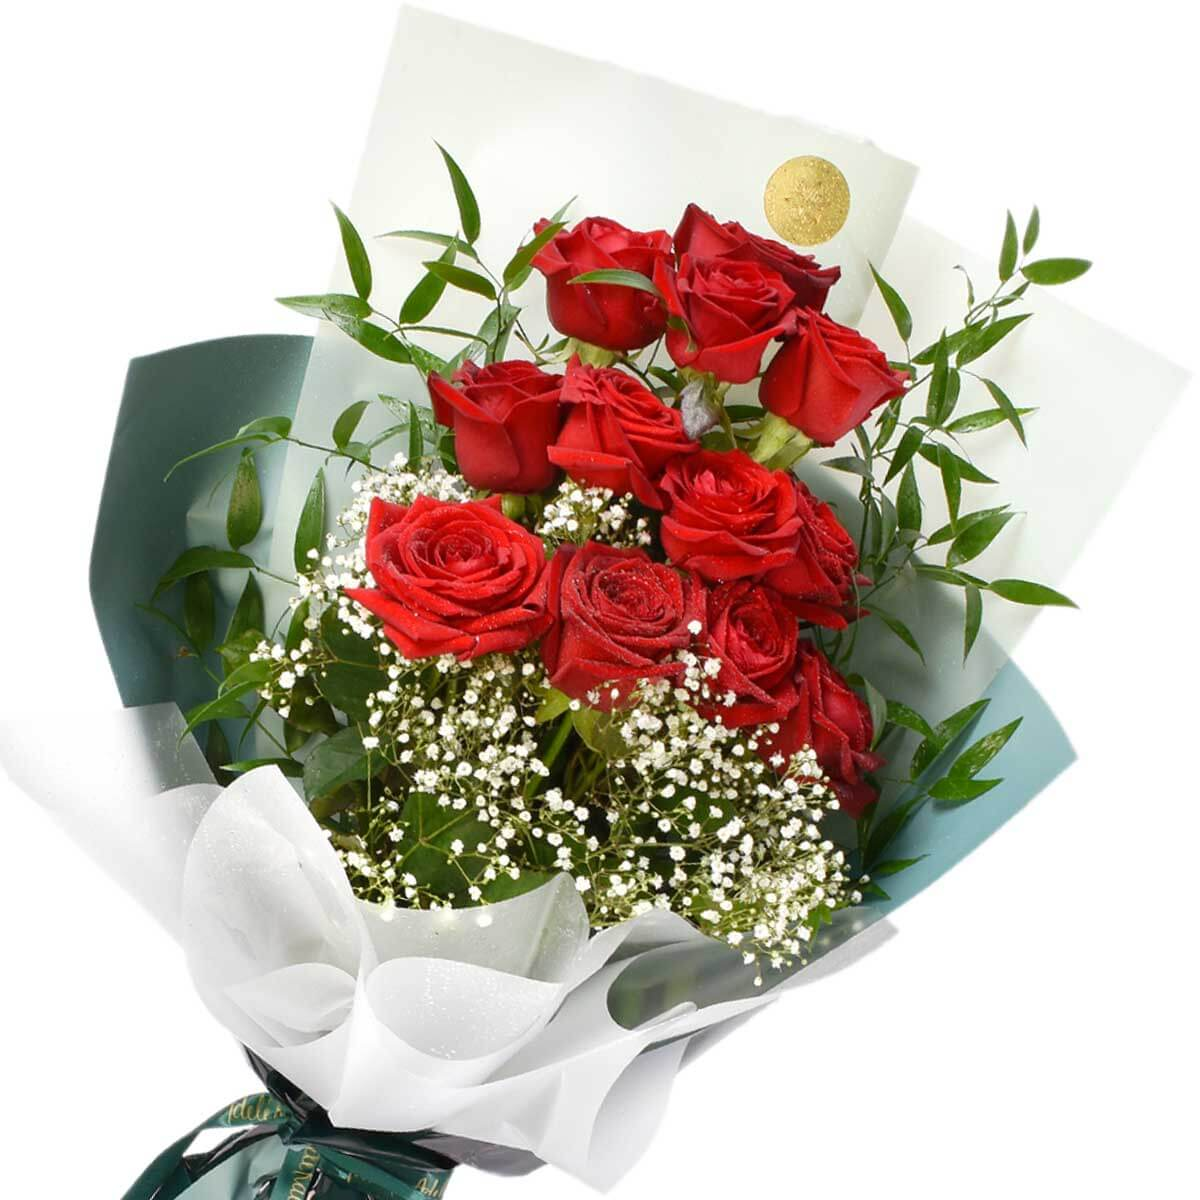 Flower delivery service in Burnaby Canada | Adele Rae